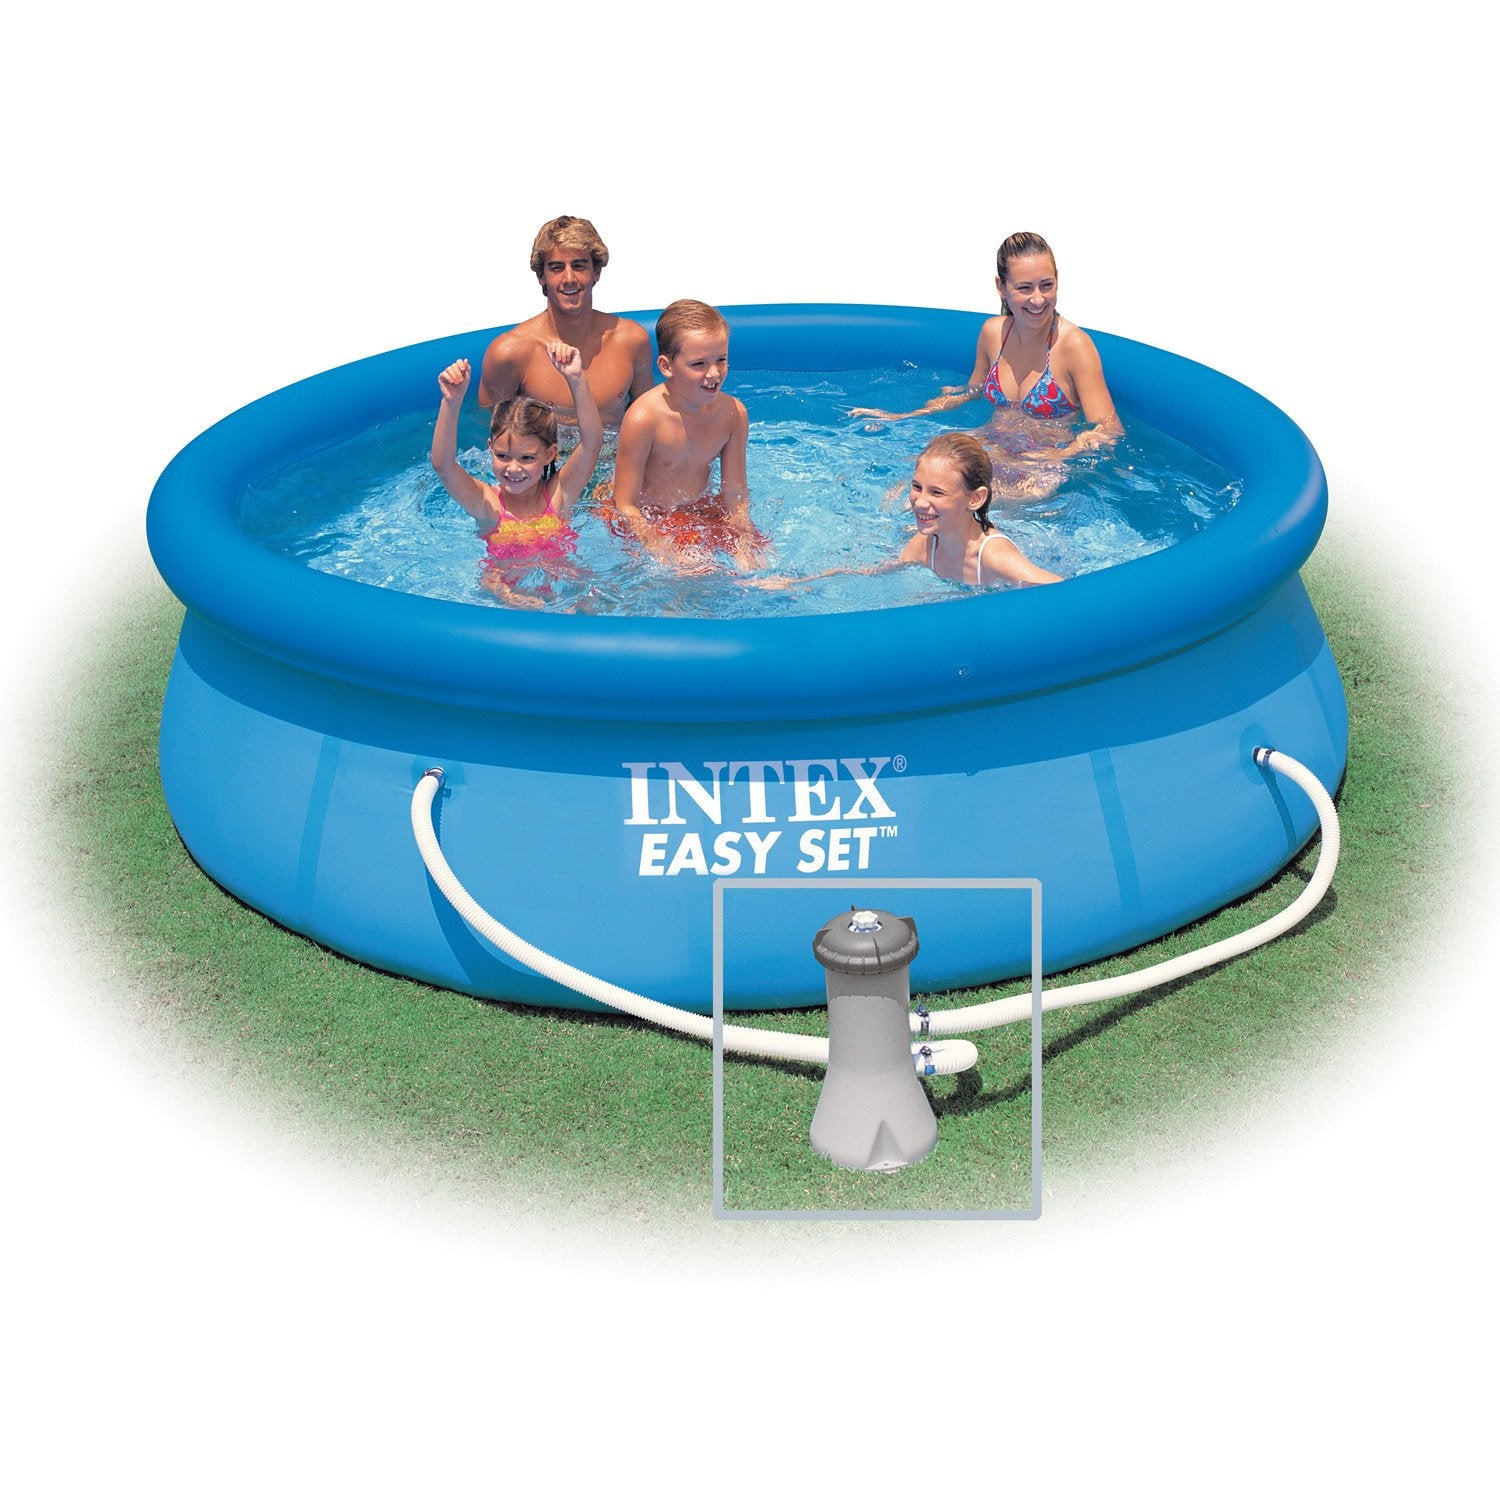 Piscine hors sol autoportante gonflable easy set intex for Piscina intex easy set